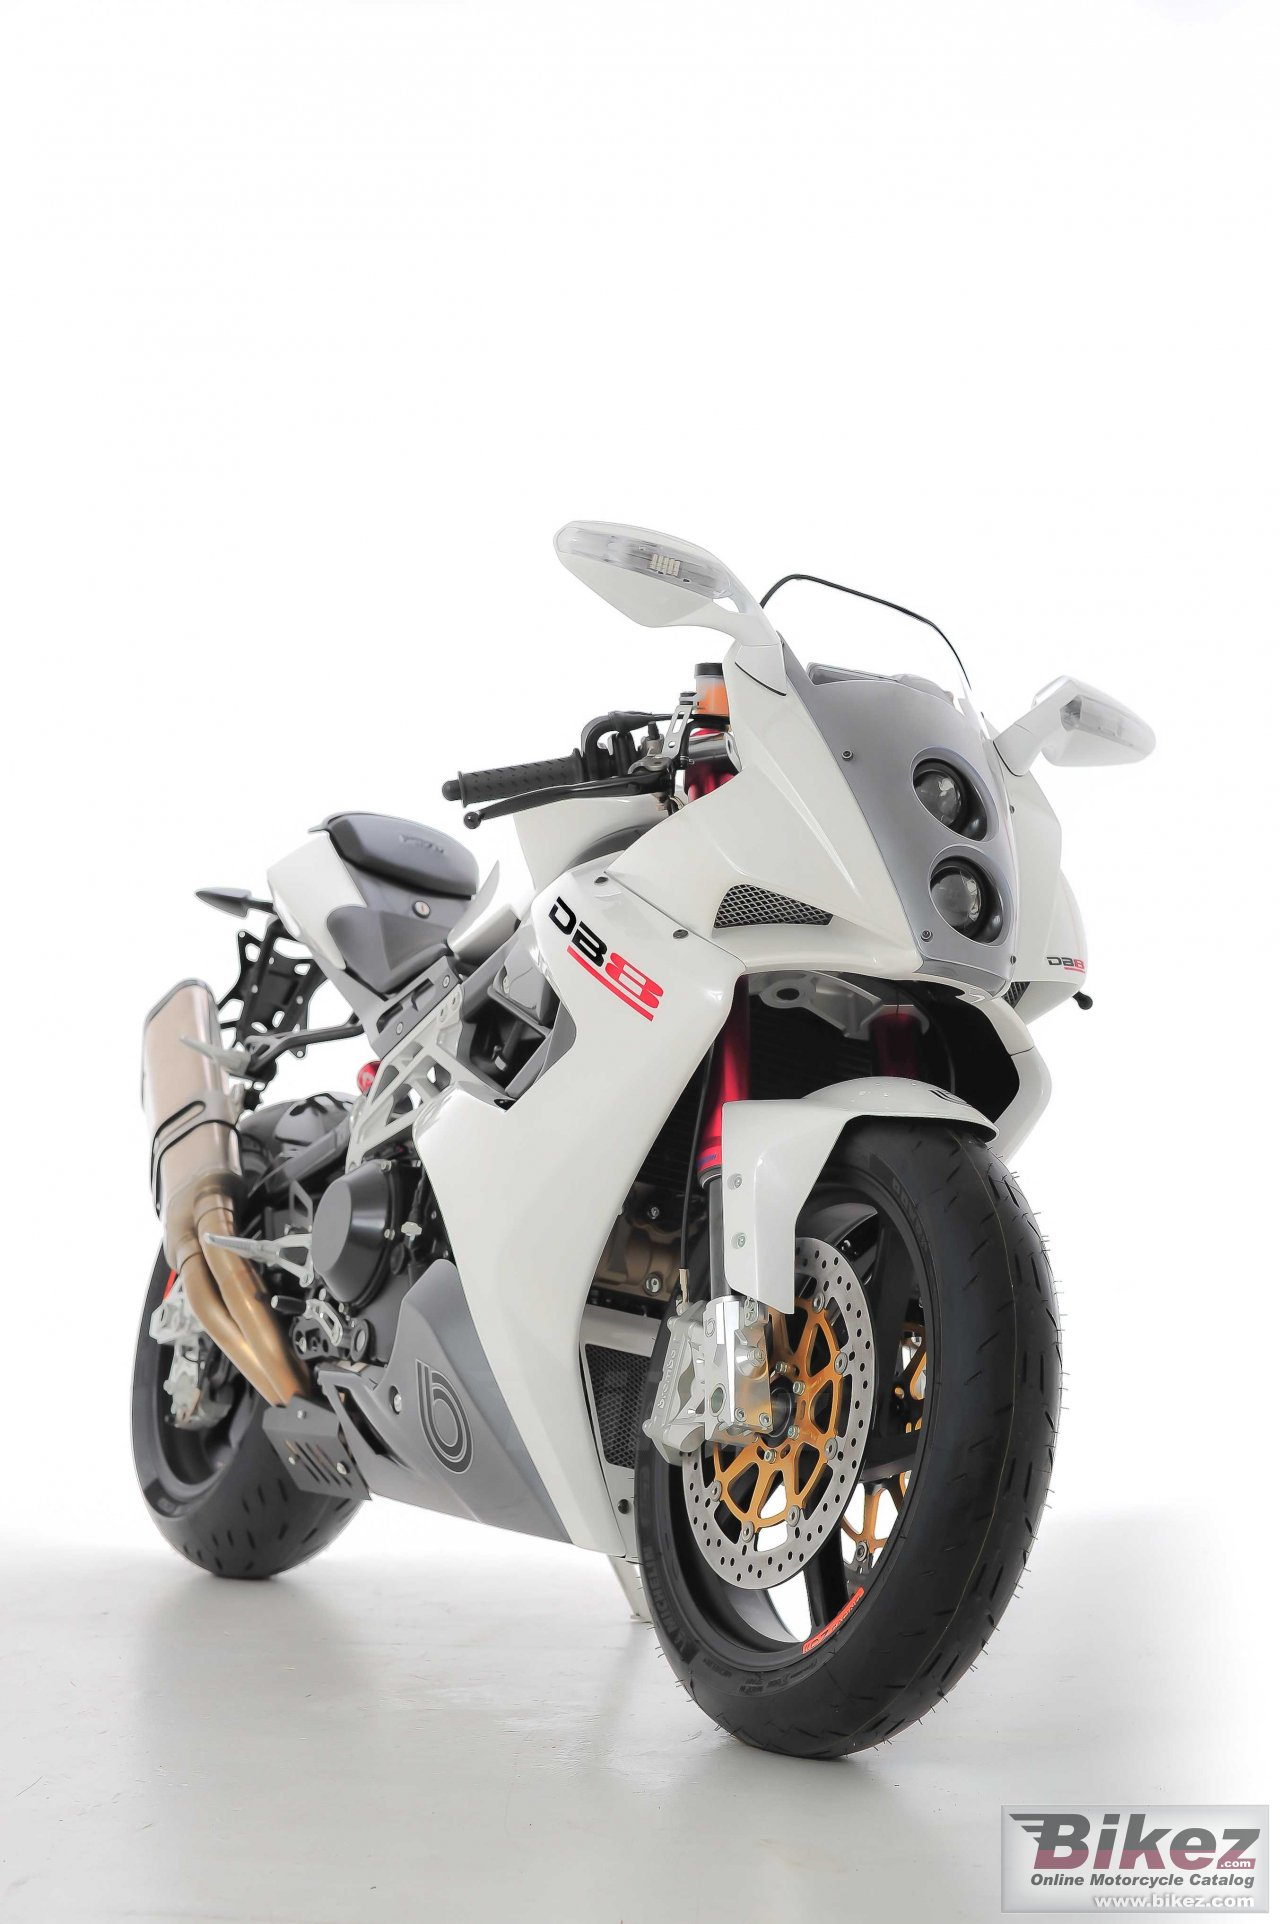 Big Bimota db8 picture and wallpaper from Bikez.com